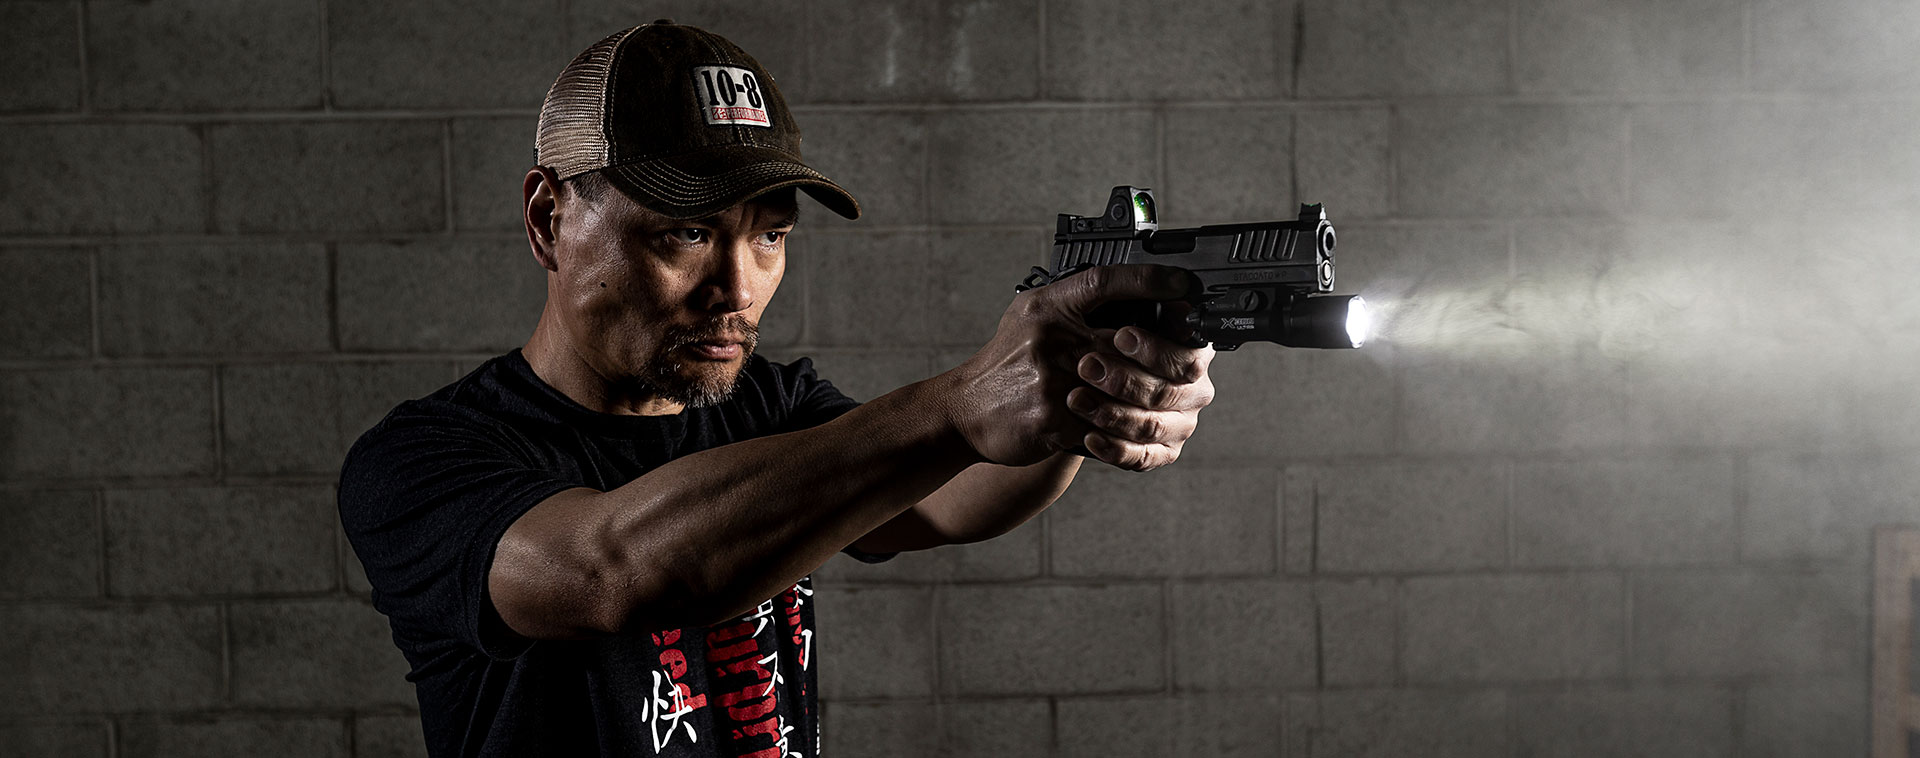 SureFire Field Notes Episode 63 with Hilton Yam10-8 Performance founder offers 1911/2011-specific handgun tips